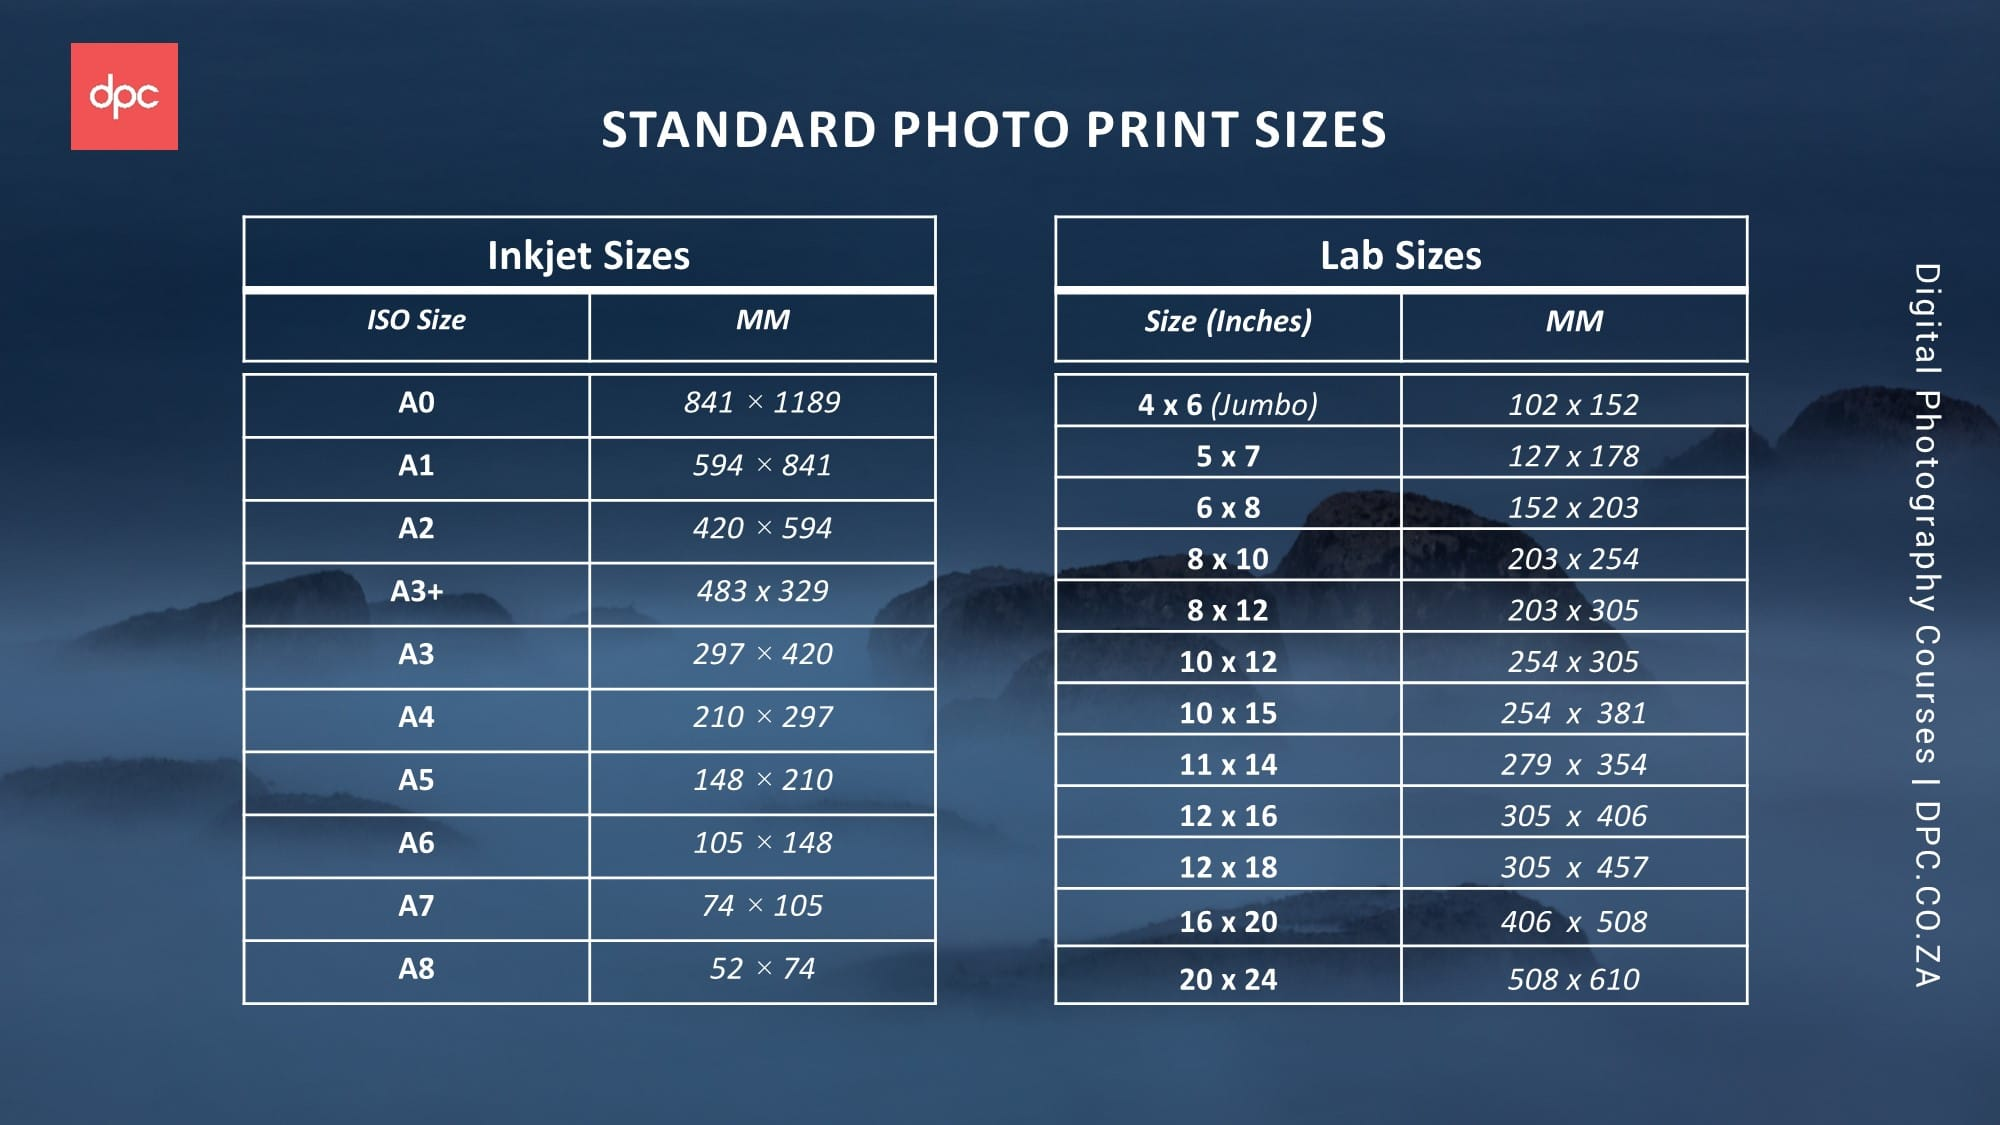 Standard Print Sizes - DPC | Digital Photography Courses